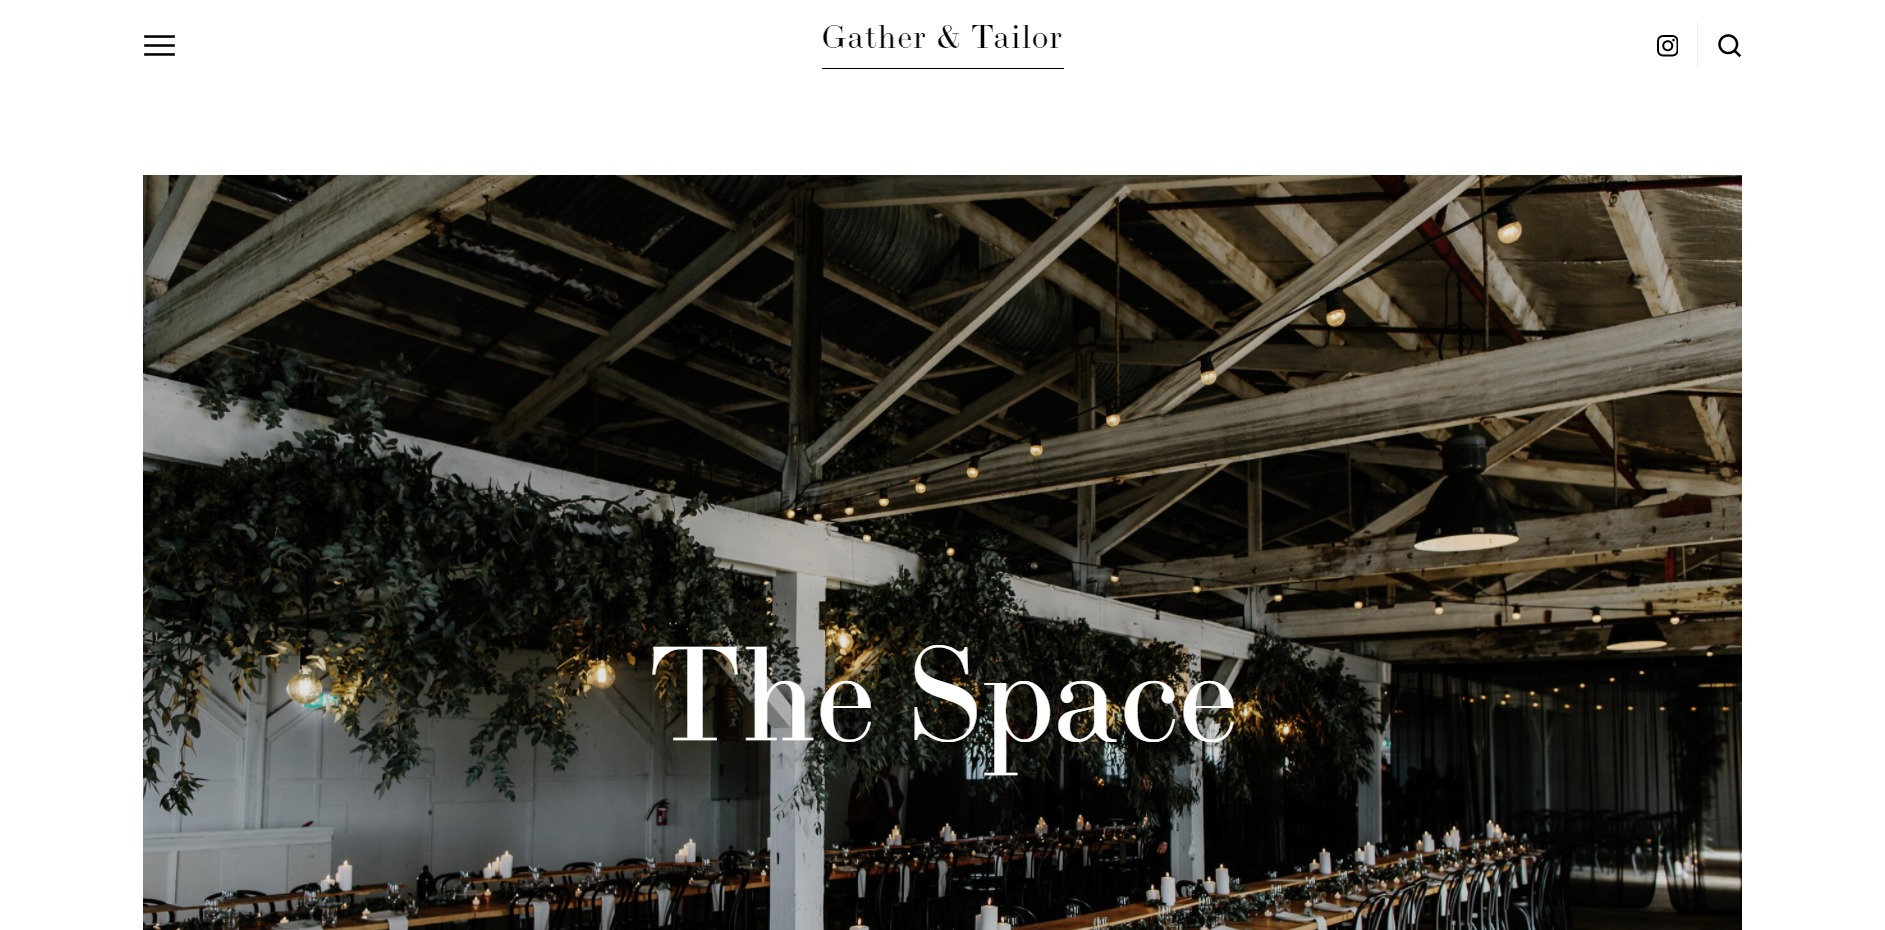 Gather & Tailor